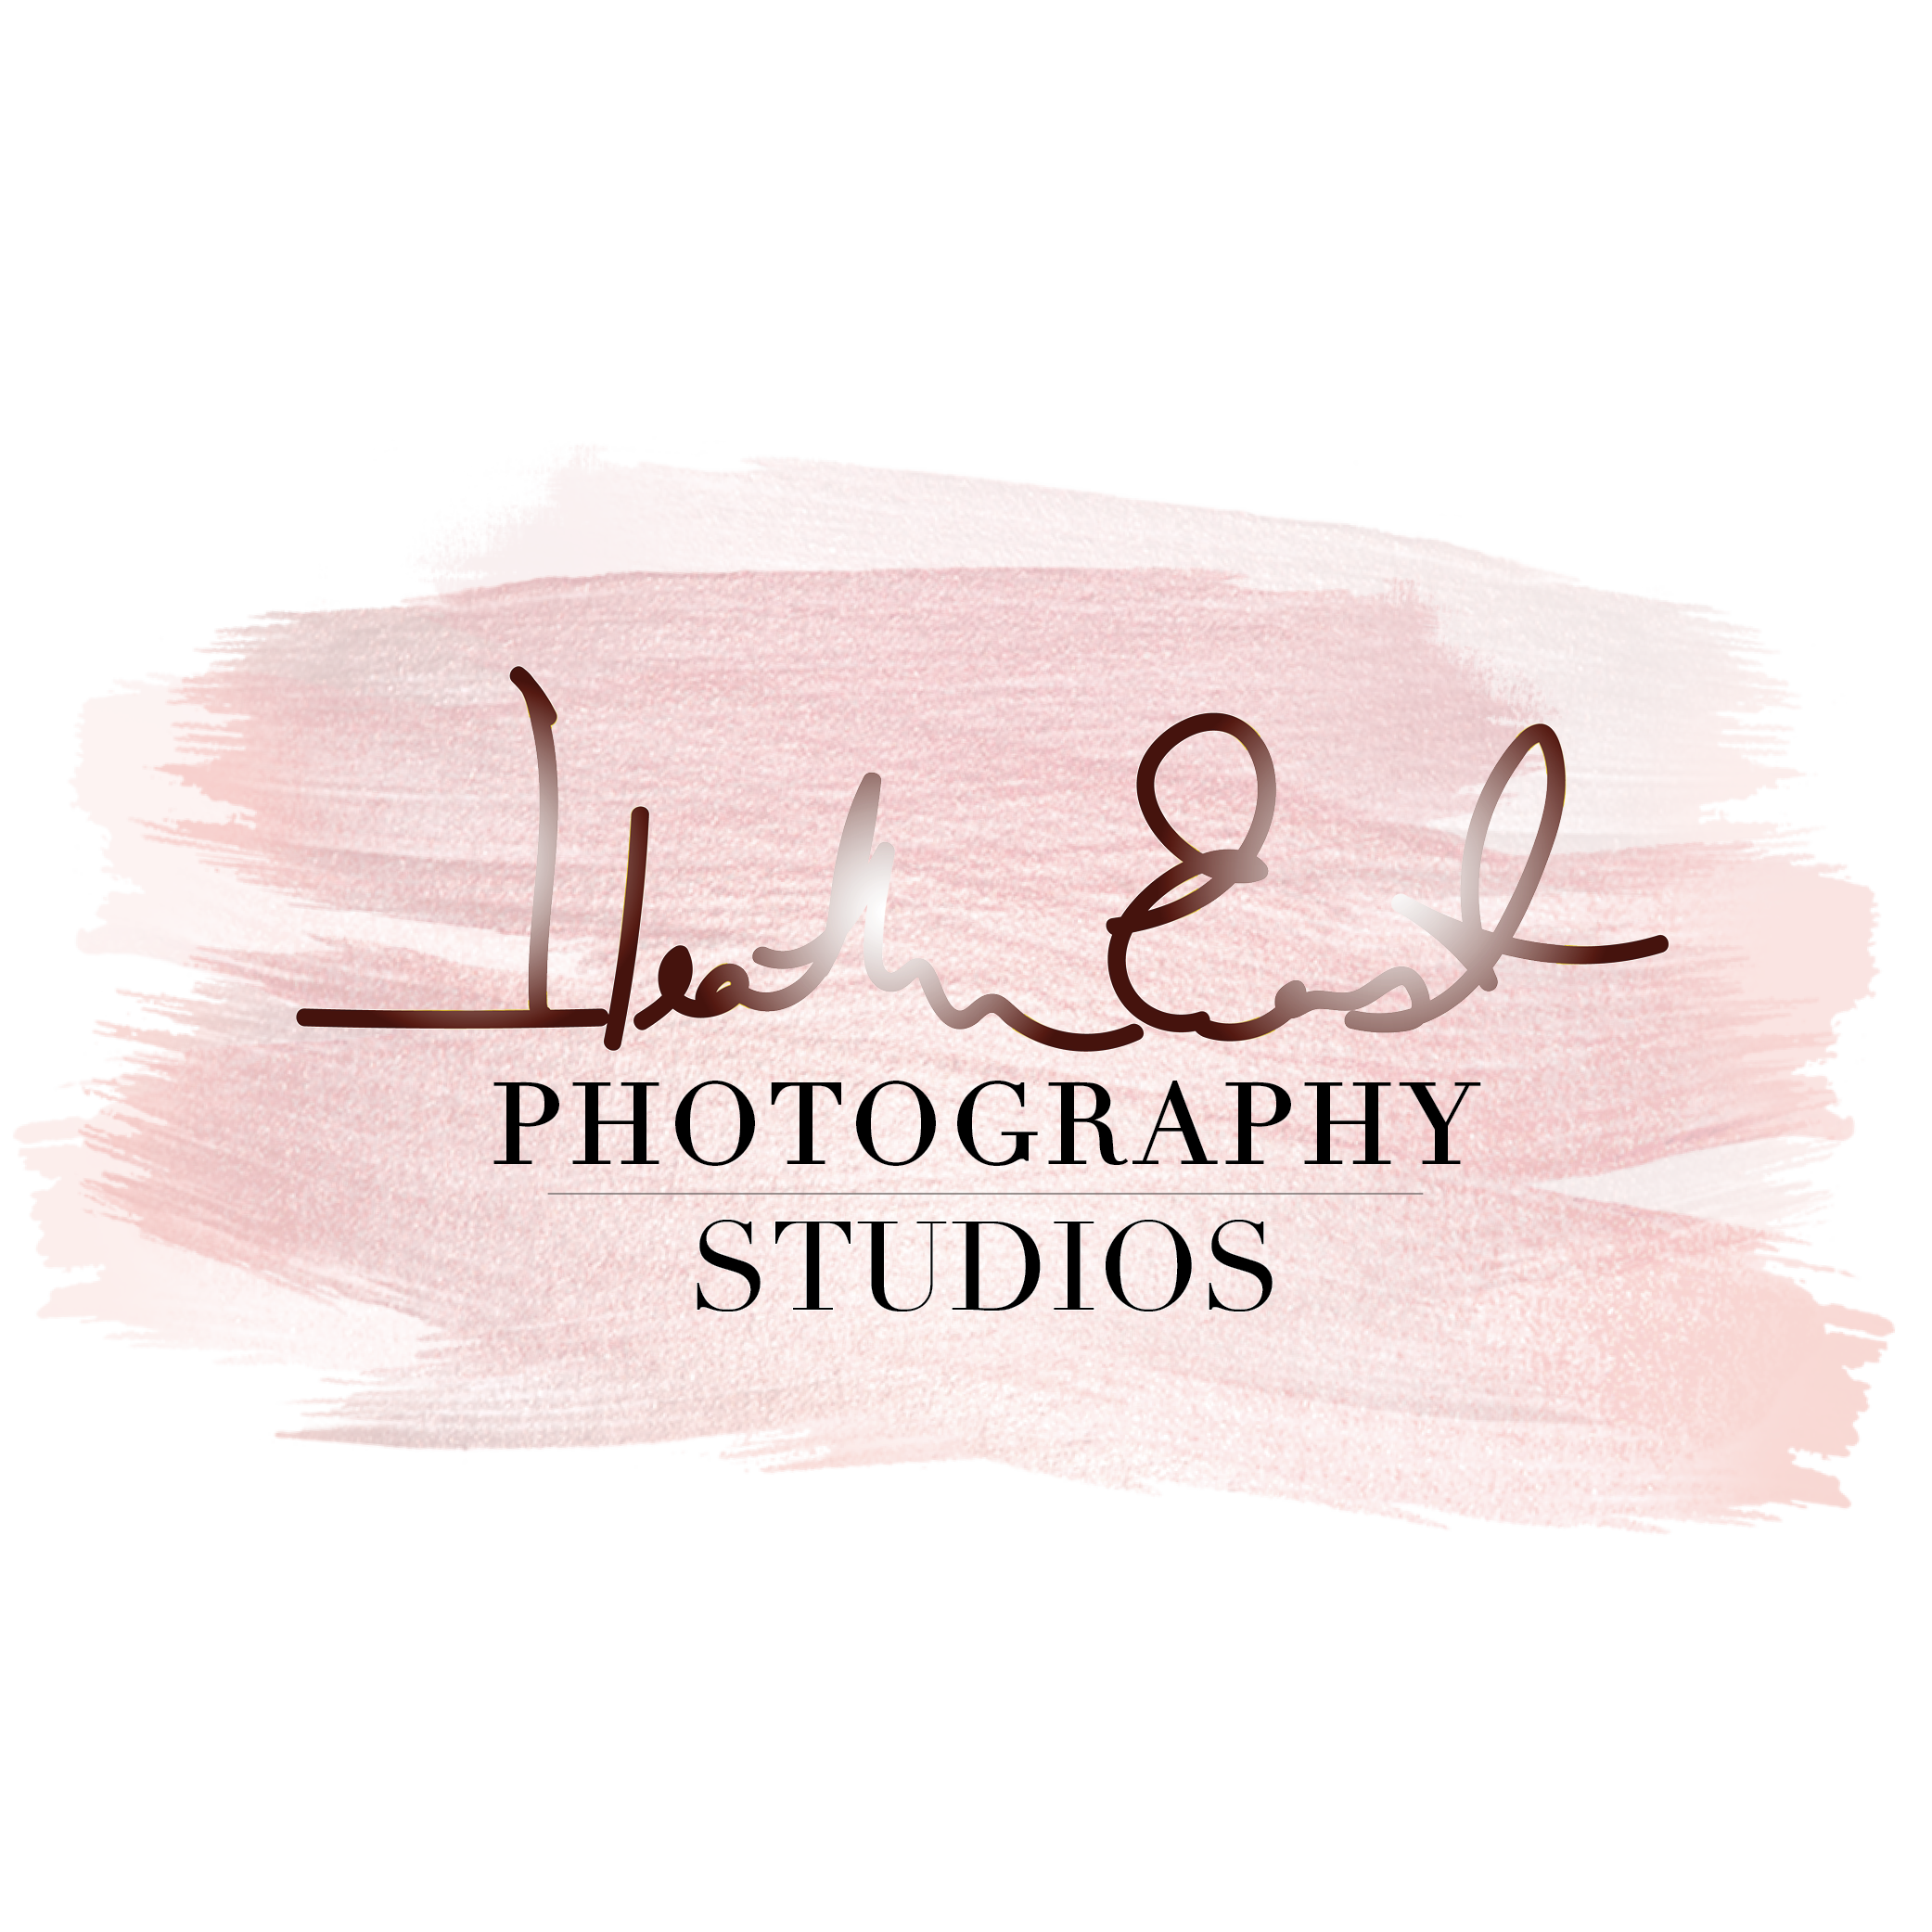 H. E. Studios - WEDDINGS | ENGAGEMENT | NEWBORN  | FAMILY | BOUDOIR